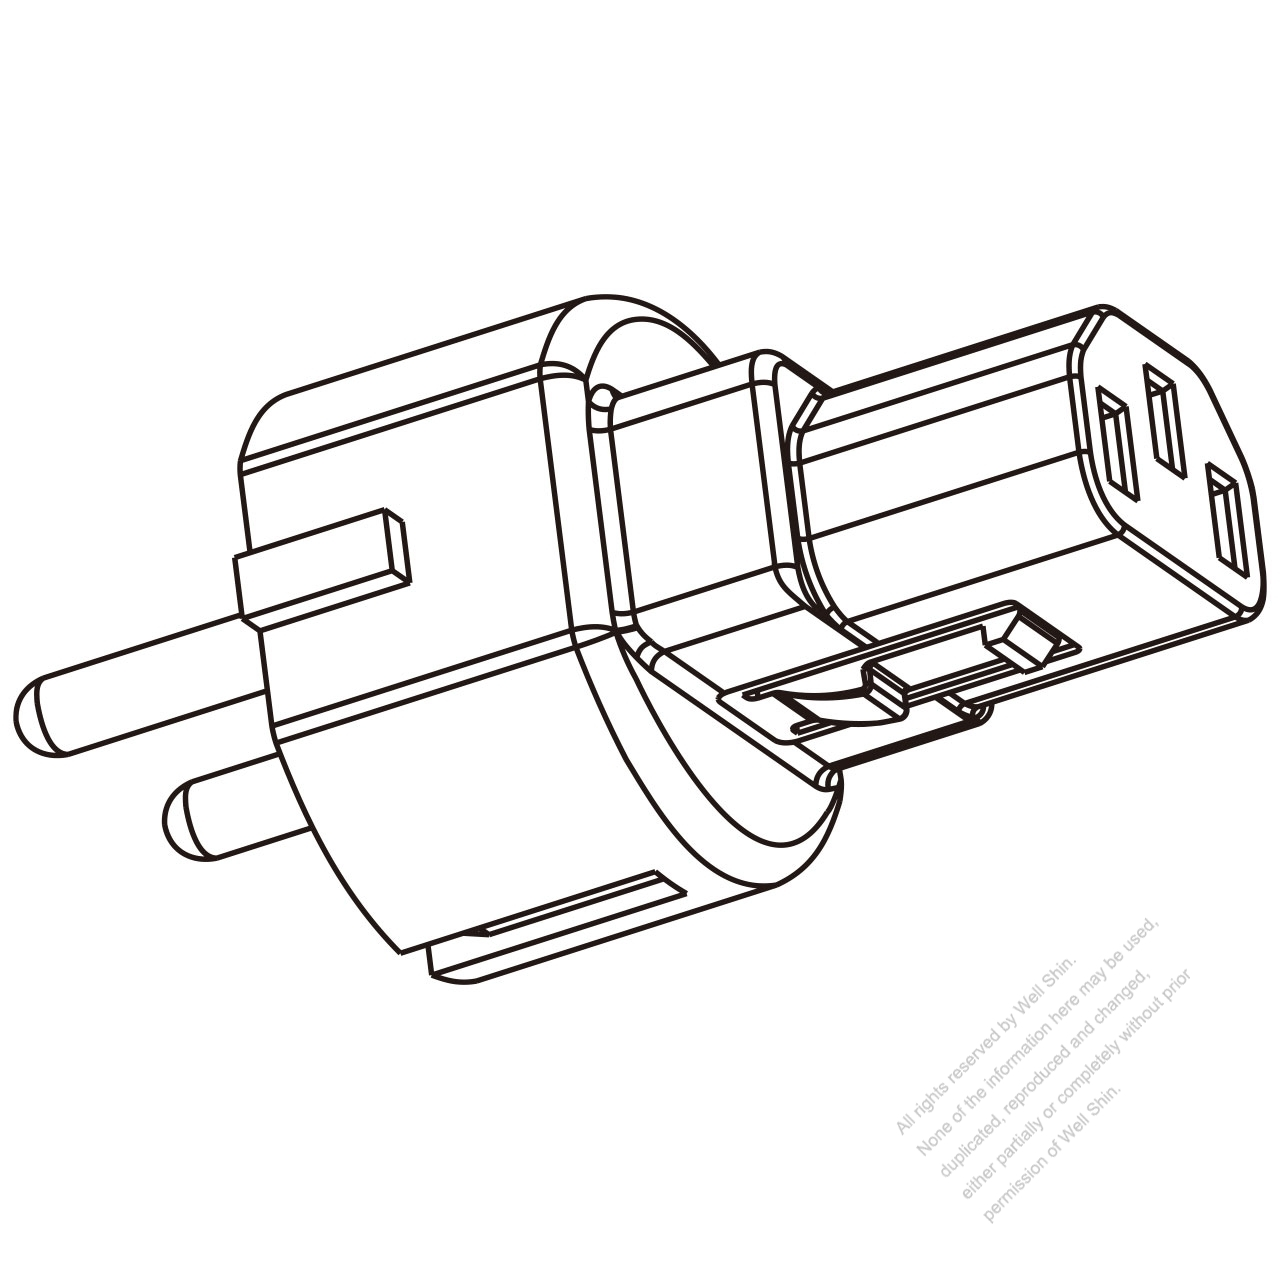 Adapter Plug, Israel Type to IEC 320 C13 Female Connector